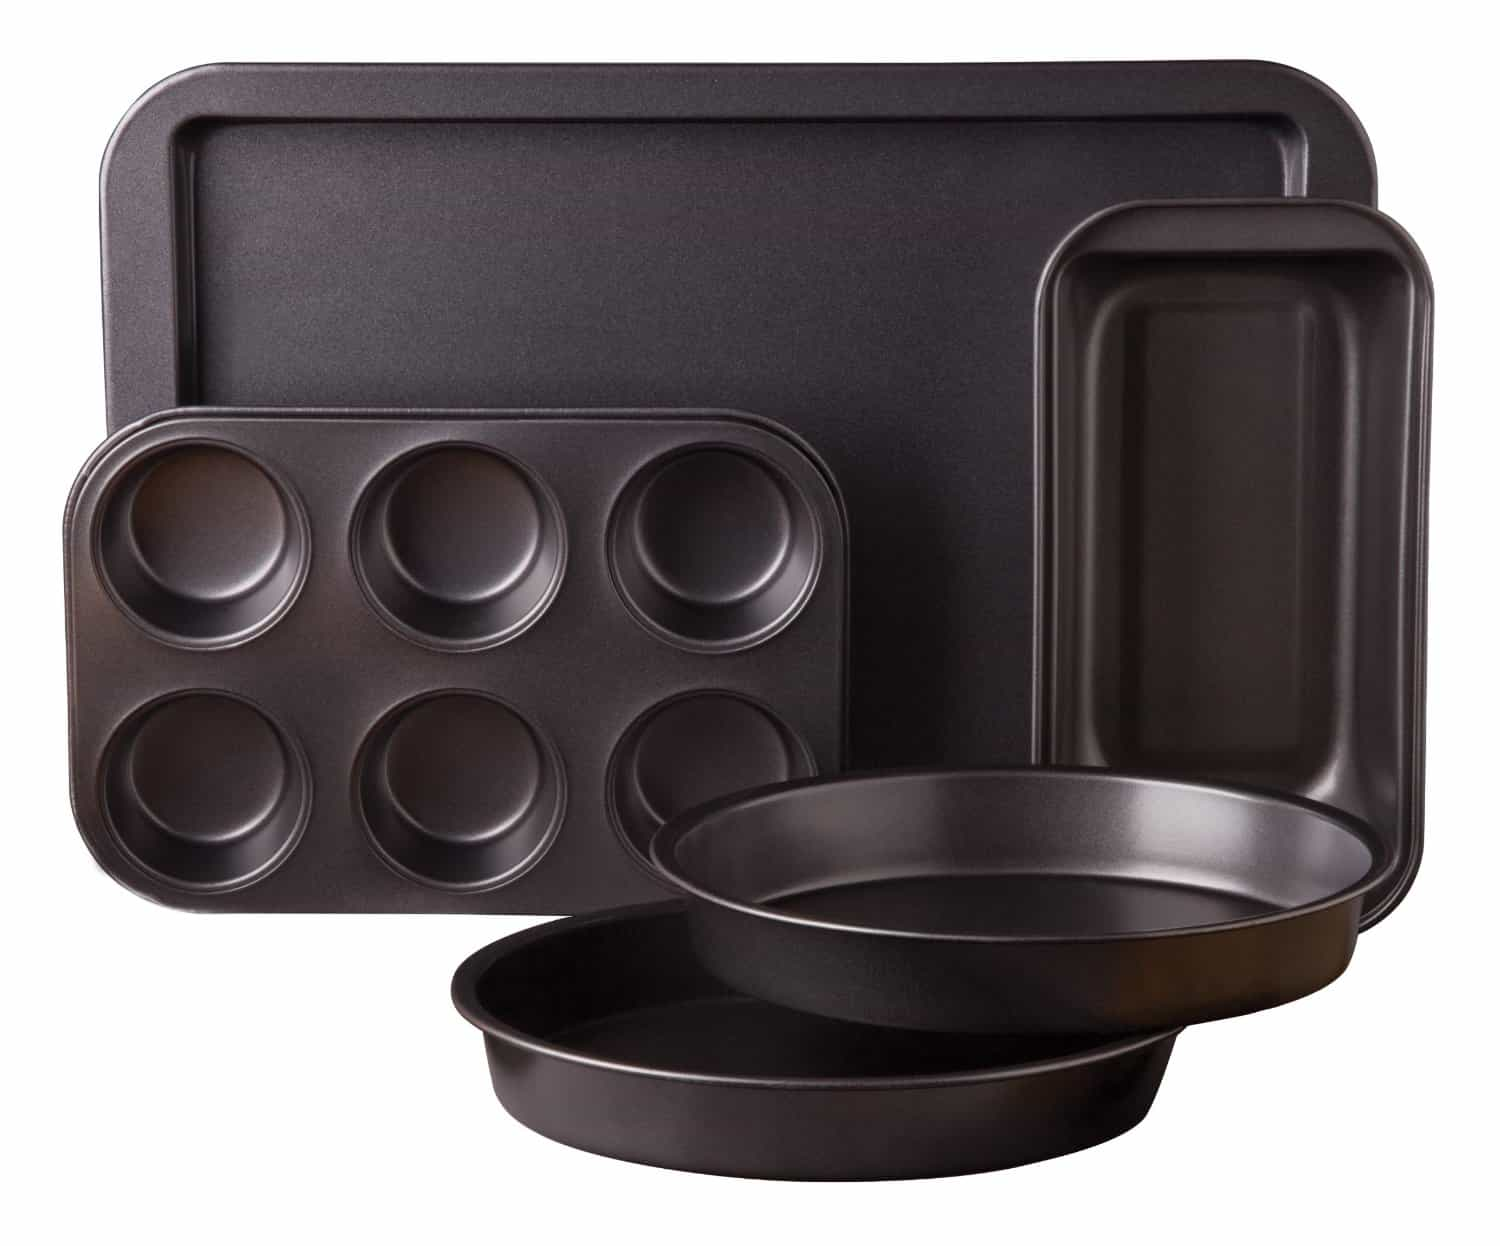 best bakeware sets 2018